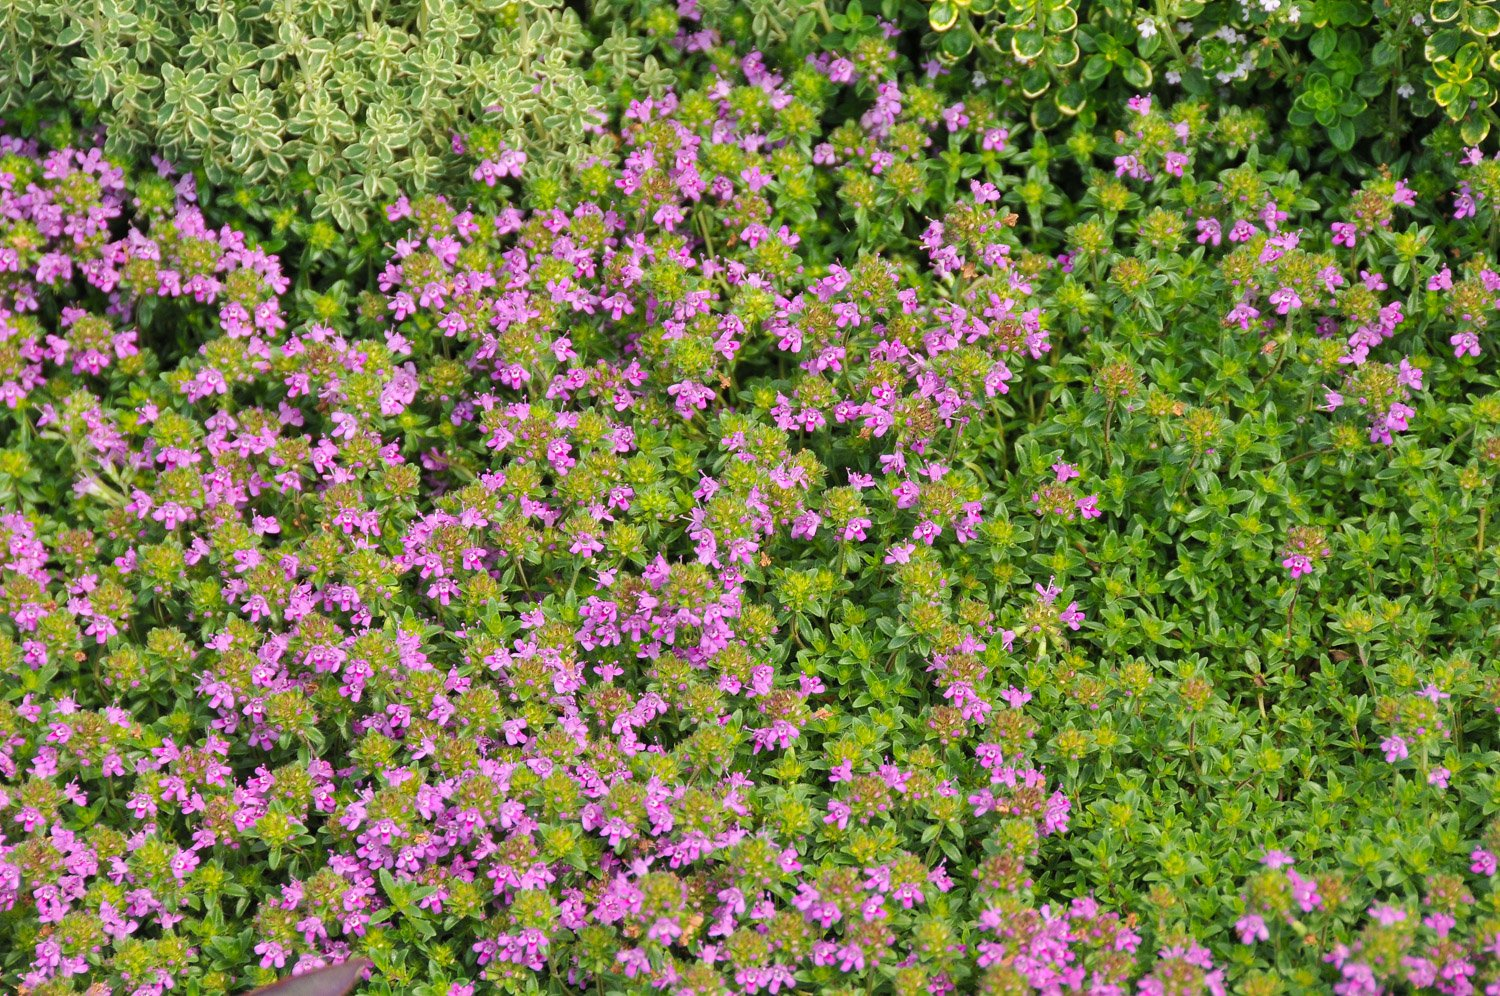 Tiny pink blooms of Creeping Thyme